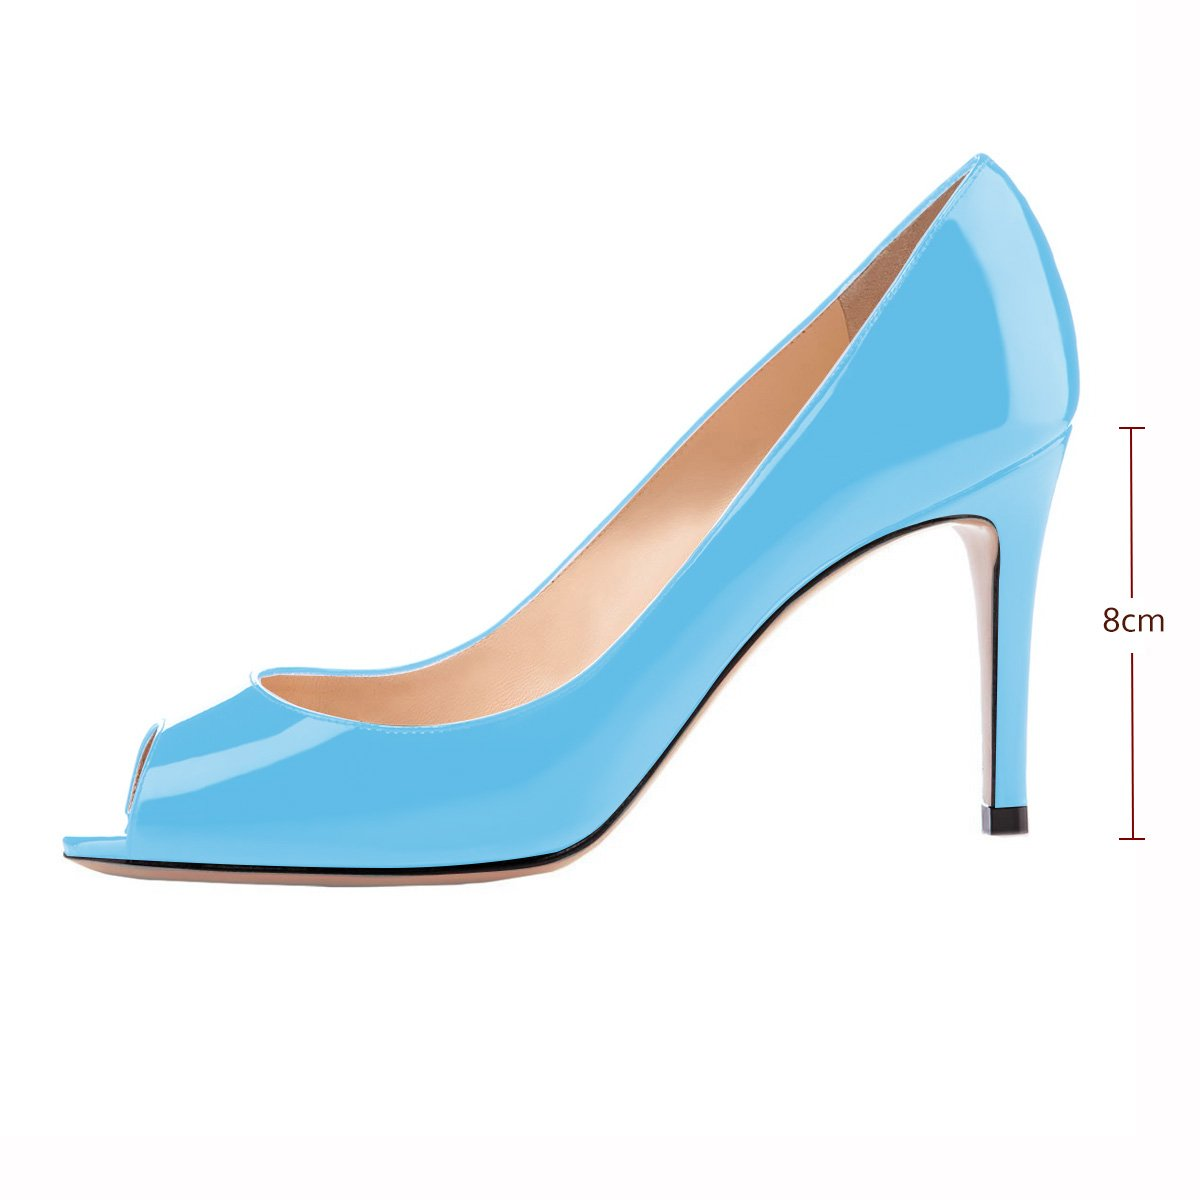 Eldof Women Peep Toe Pumps Mid-Heel Classic Pumps Formal Wedding Bridal Classic Mid-Heel Heel Open Toe Stiletto B07F1Q5Y9S 12.5 B(M) US|Blue b37b9d